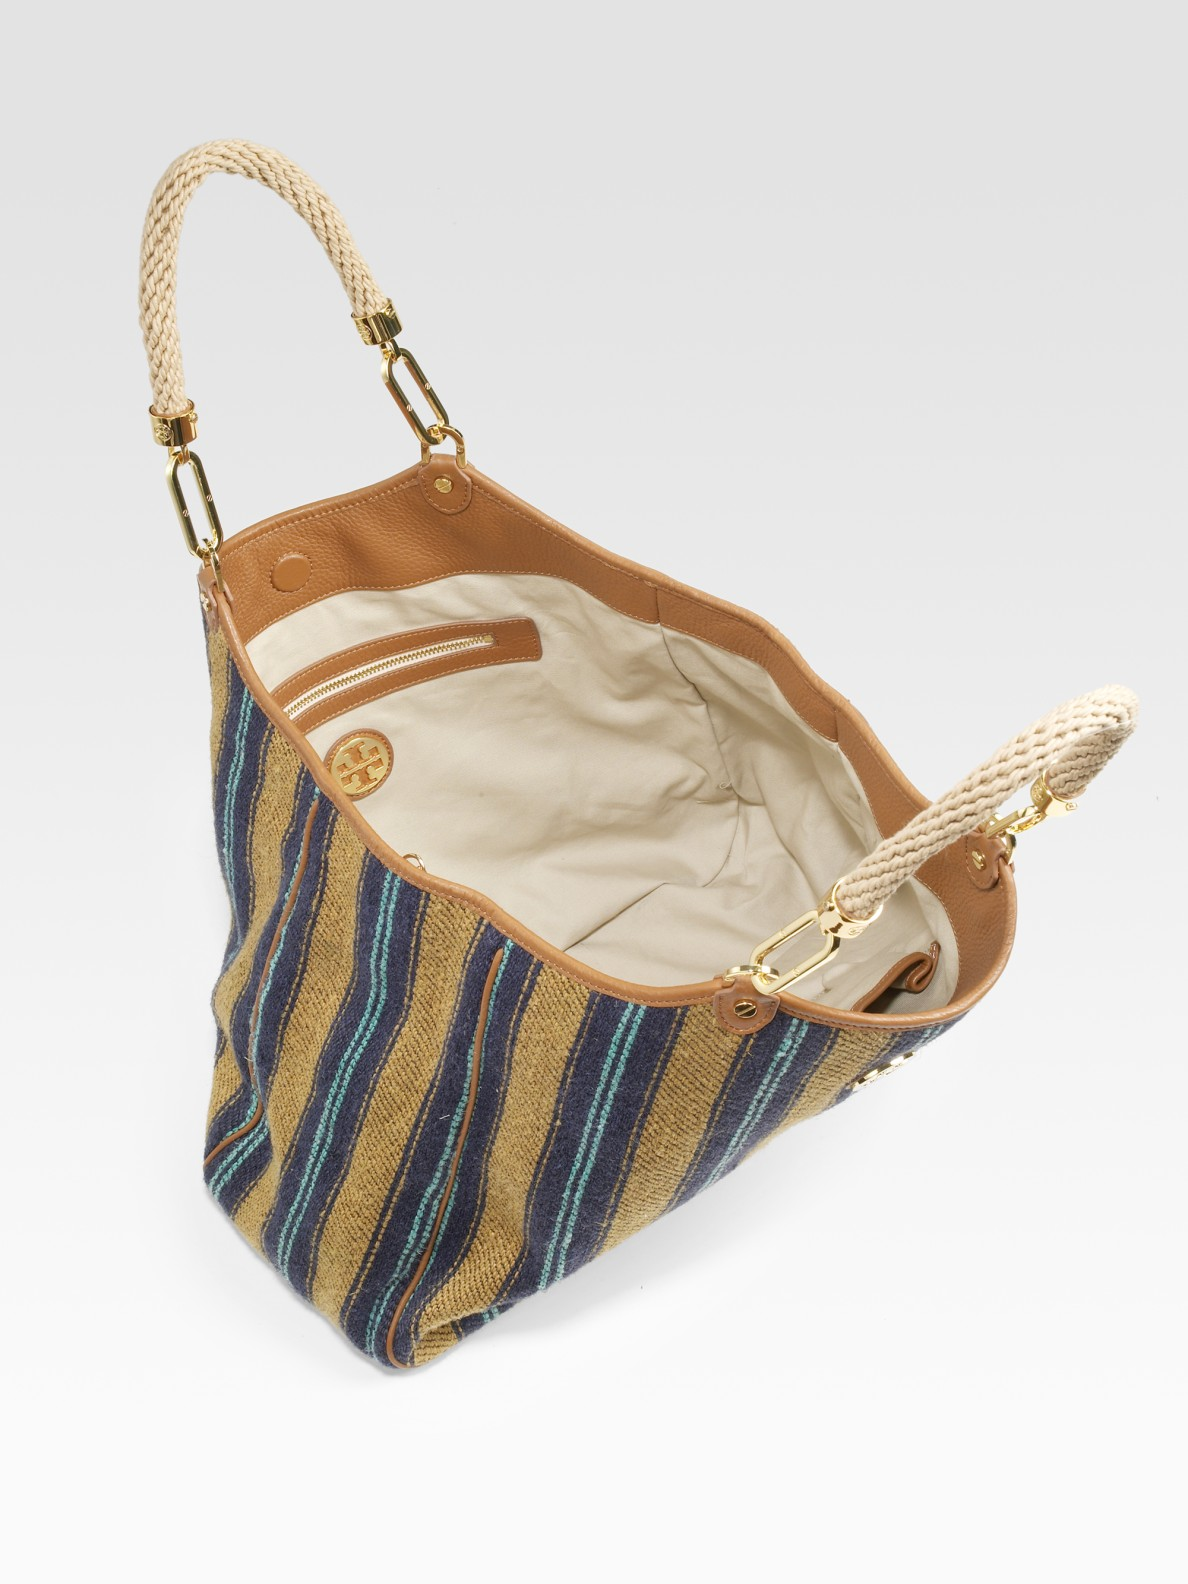 Tory Burch Channing Burlap Tote Bag In Natural Lyst